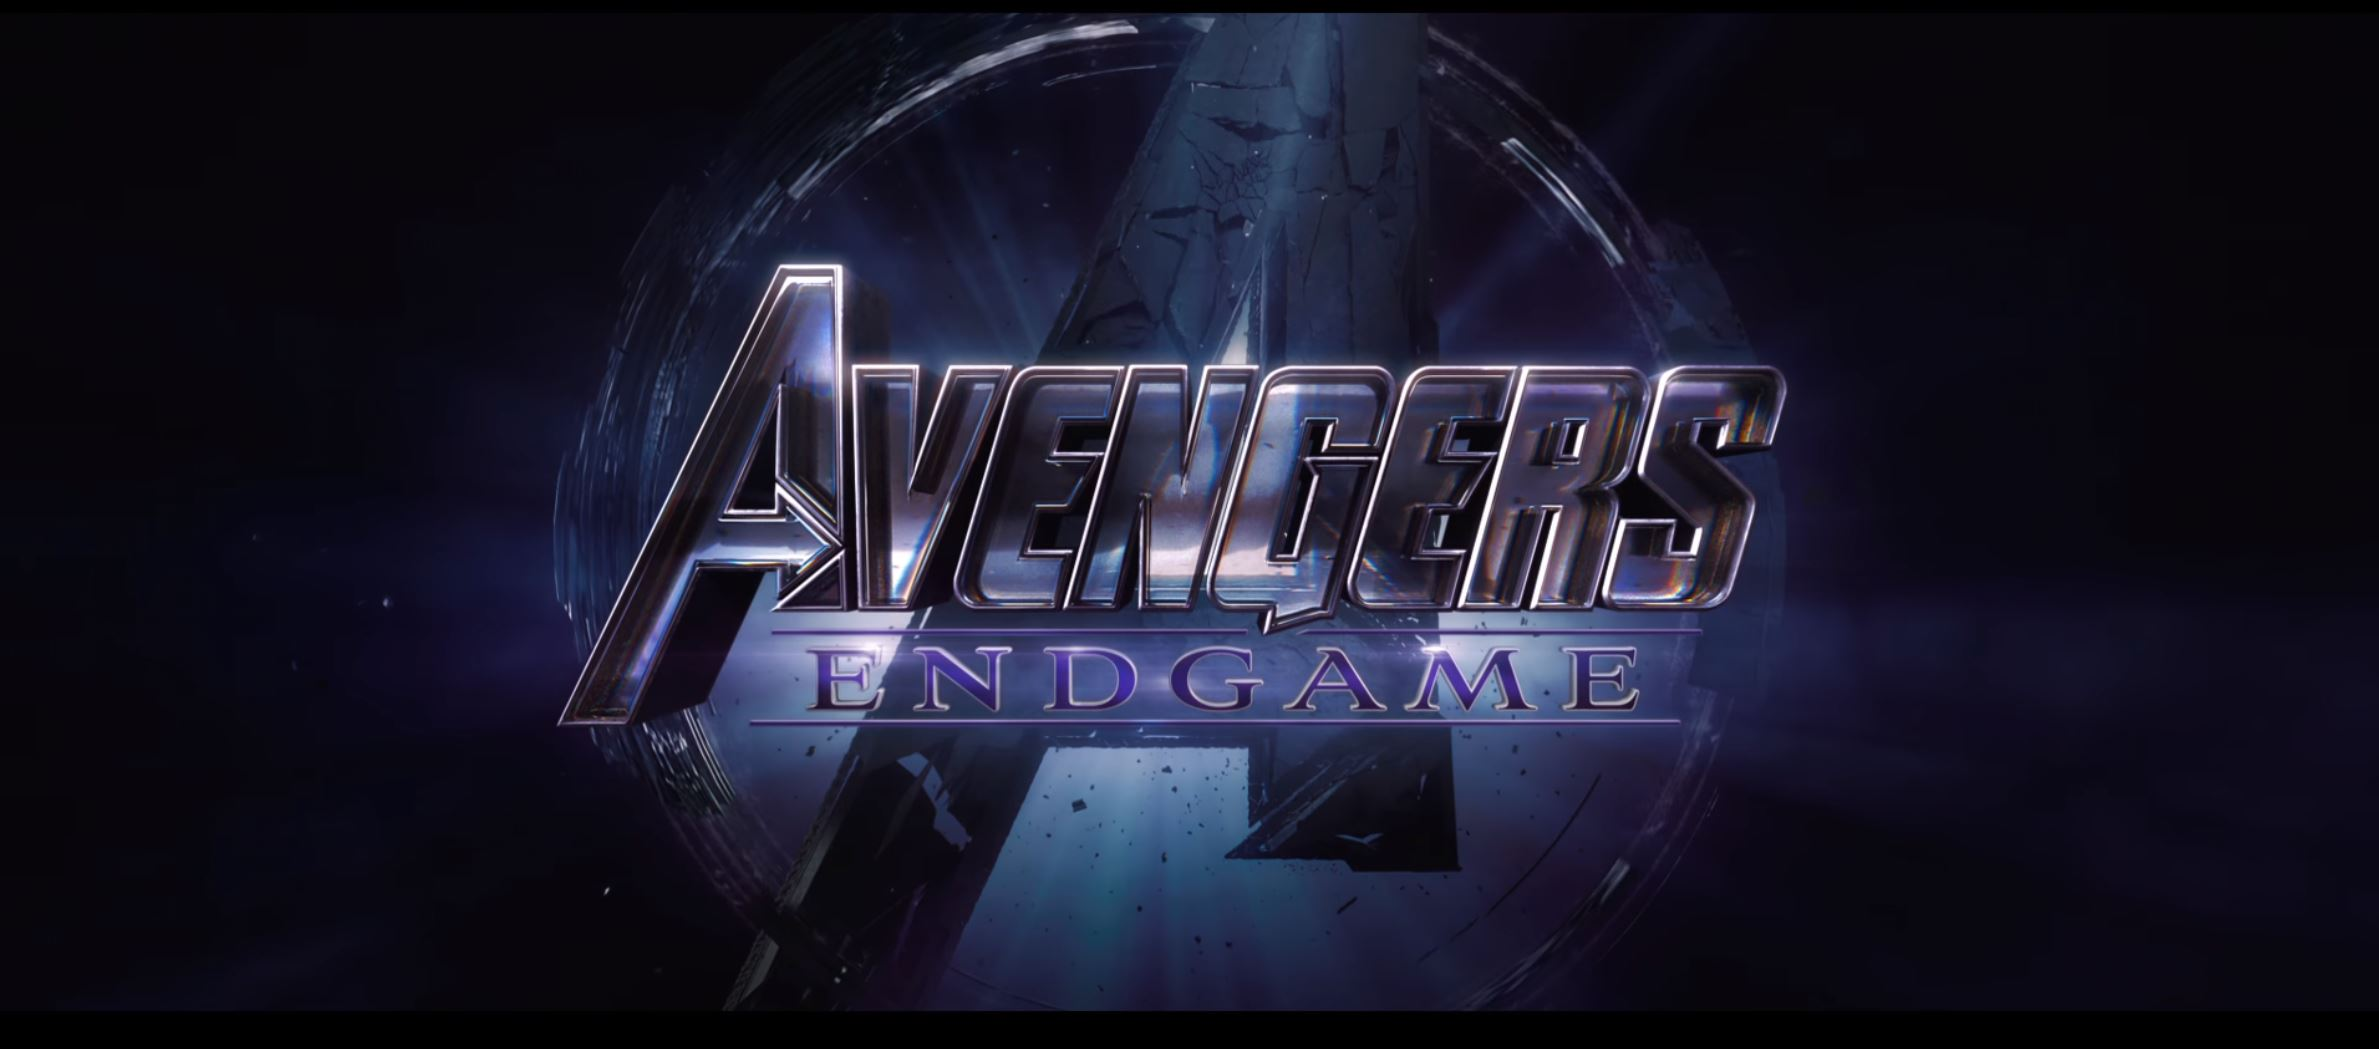 Marvel Studios' Avengers - Official Trailer ENDGAME IS HERE!